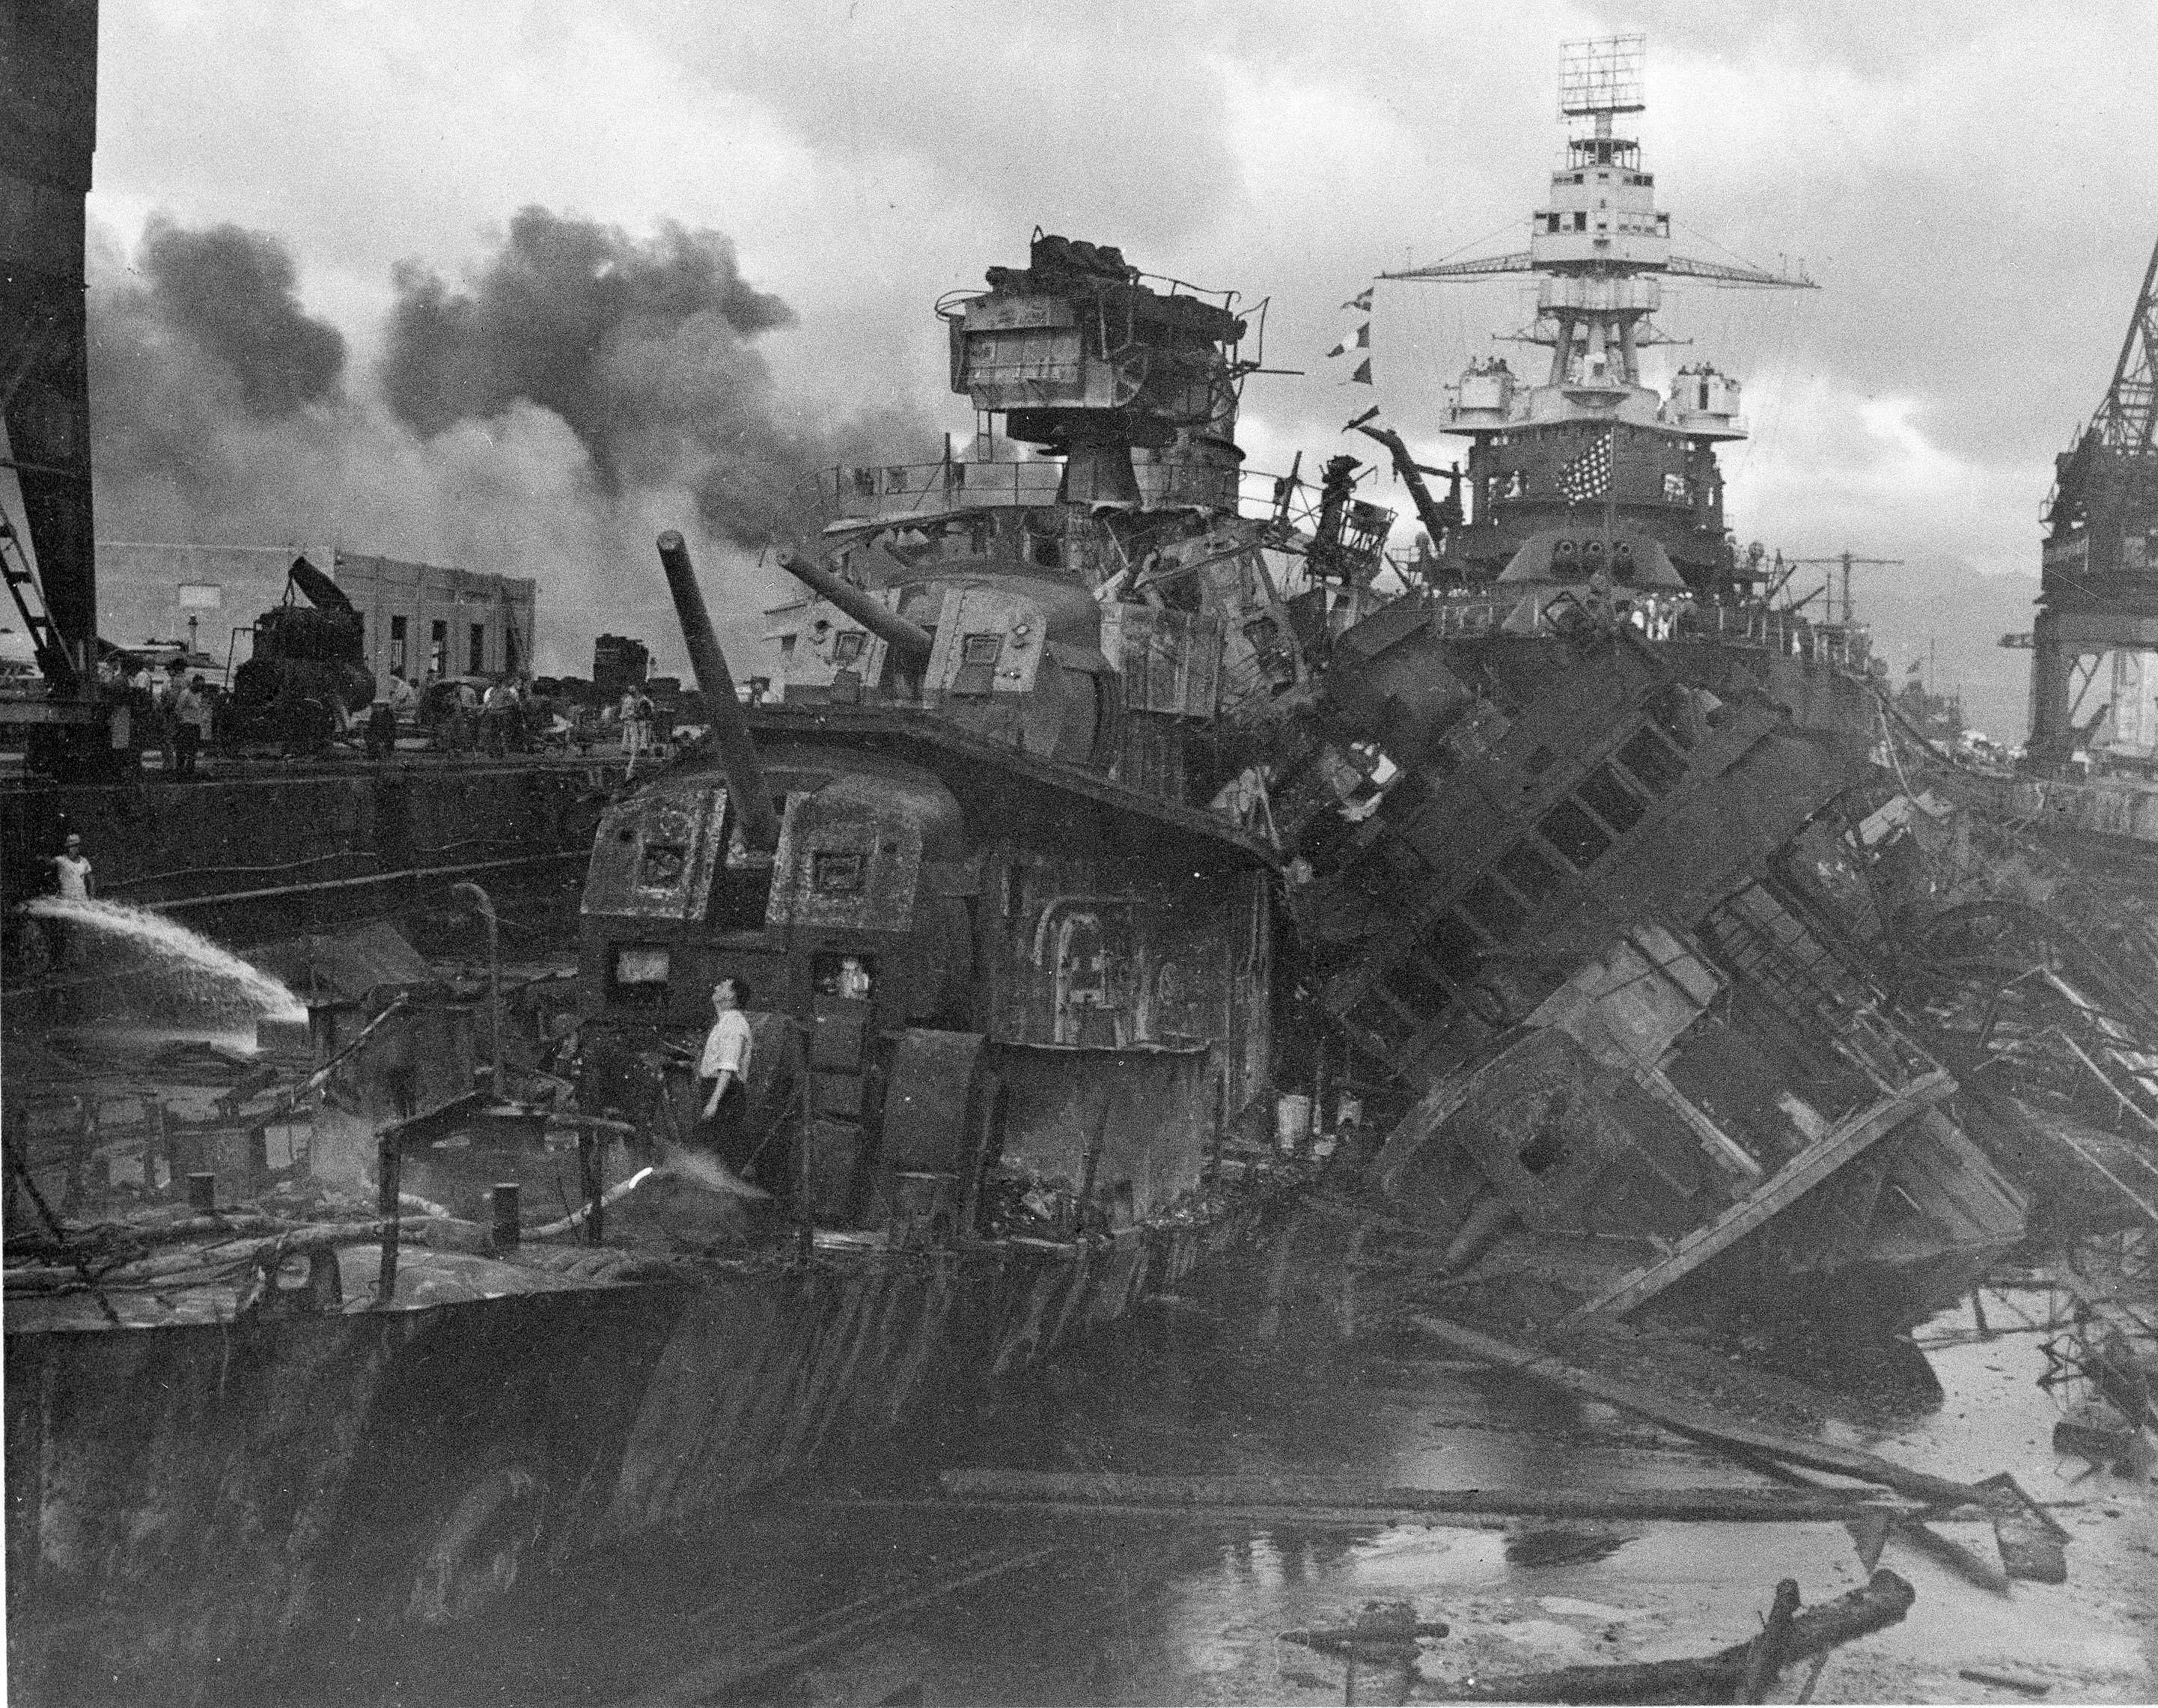 The most comparable attack against the United States was the surprise Japanese bombing of Pearl Harbor on Dec. 7, 1941, that plunged the U.S. into war.